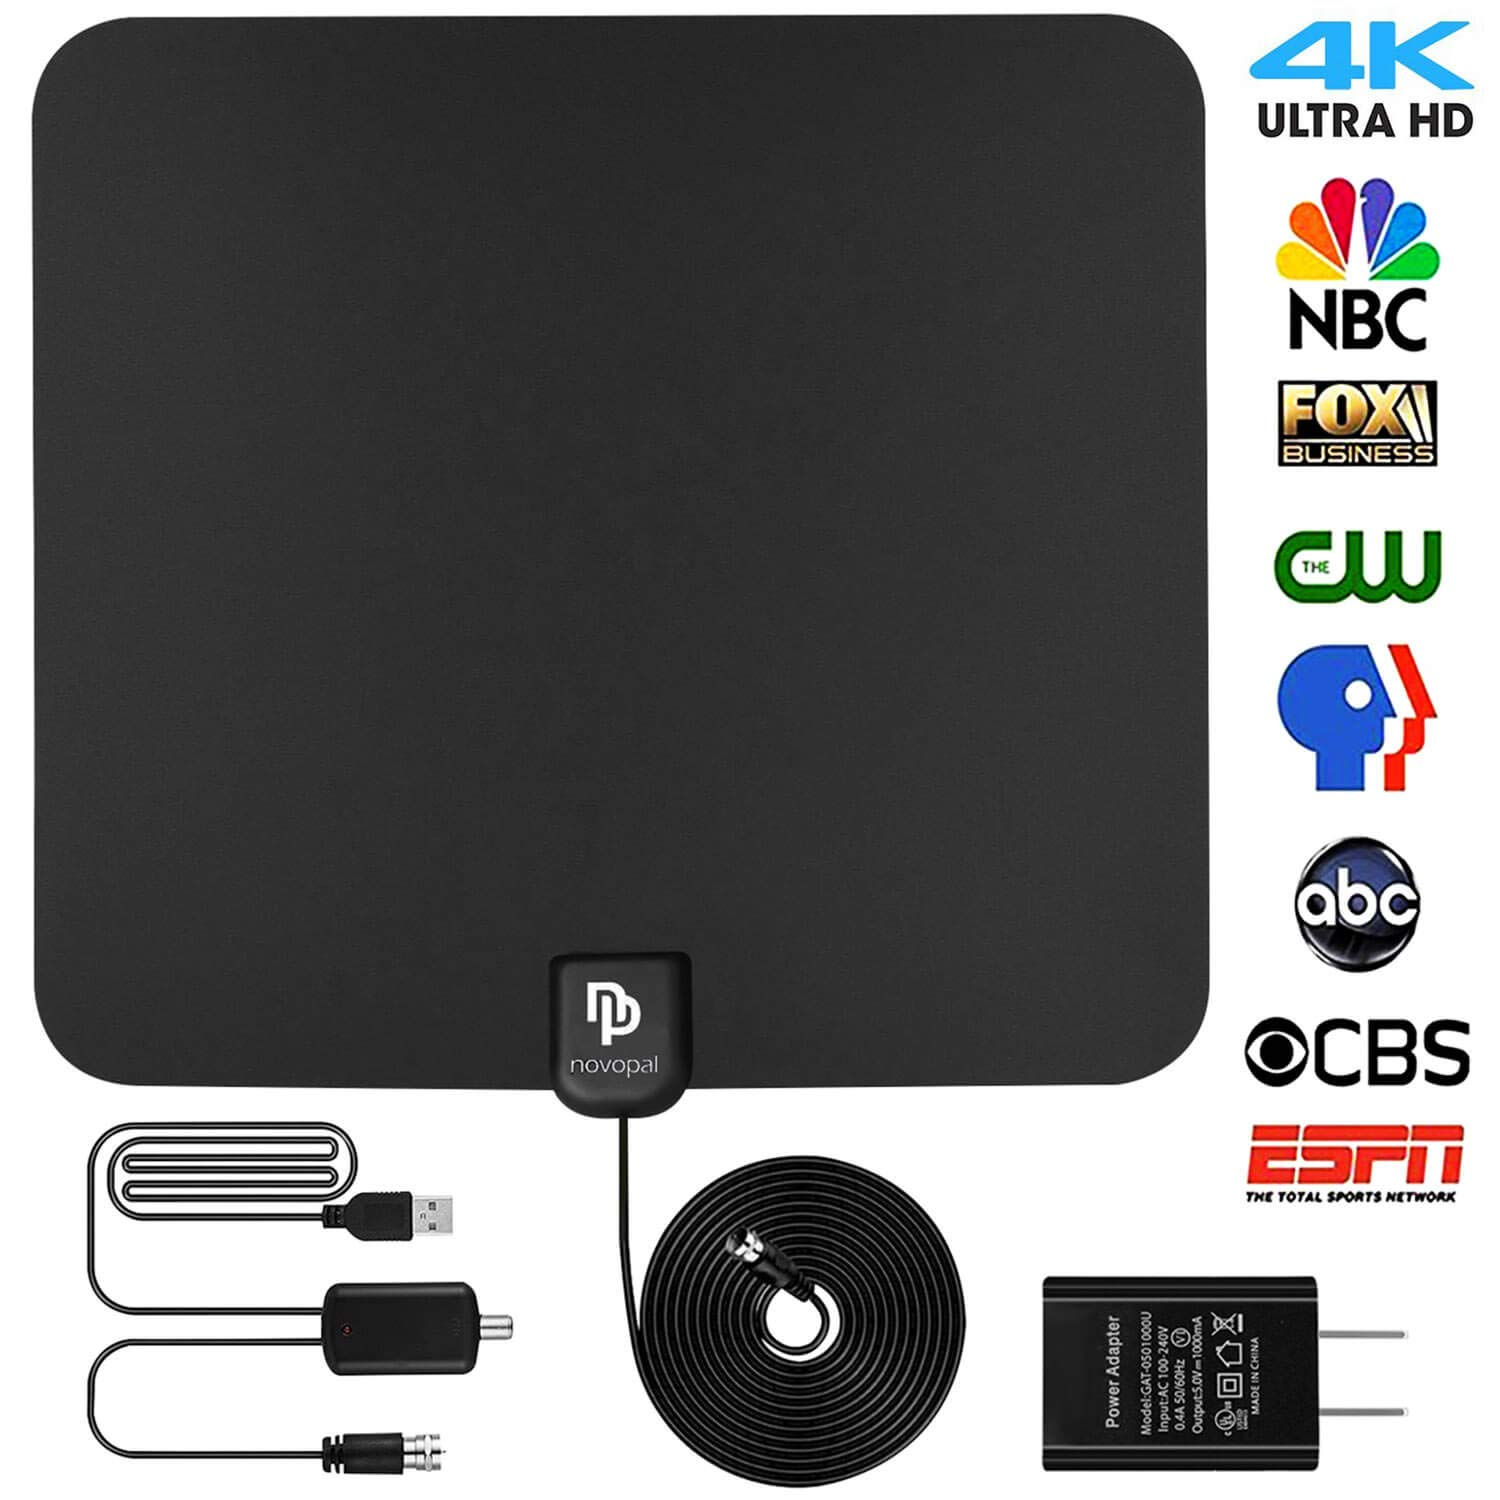 novopal [UPDATED VERSION] Indoor HD Digital TV Antenna | 60~80 Miles Long Range | Support 4K 1080P with Amplified Signal Booster |HDTV Antennas by novopal